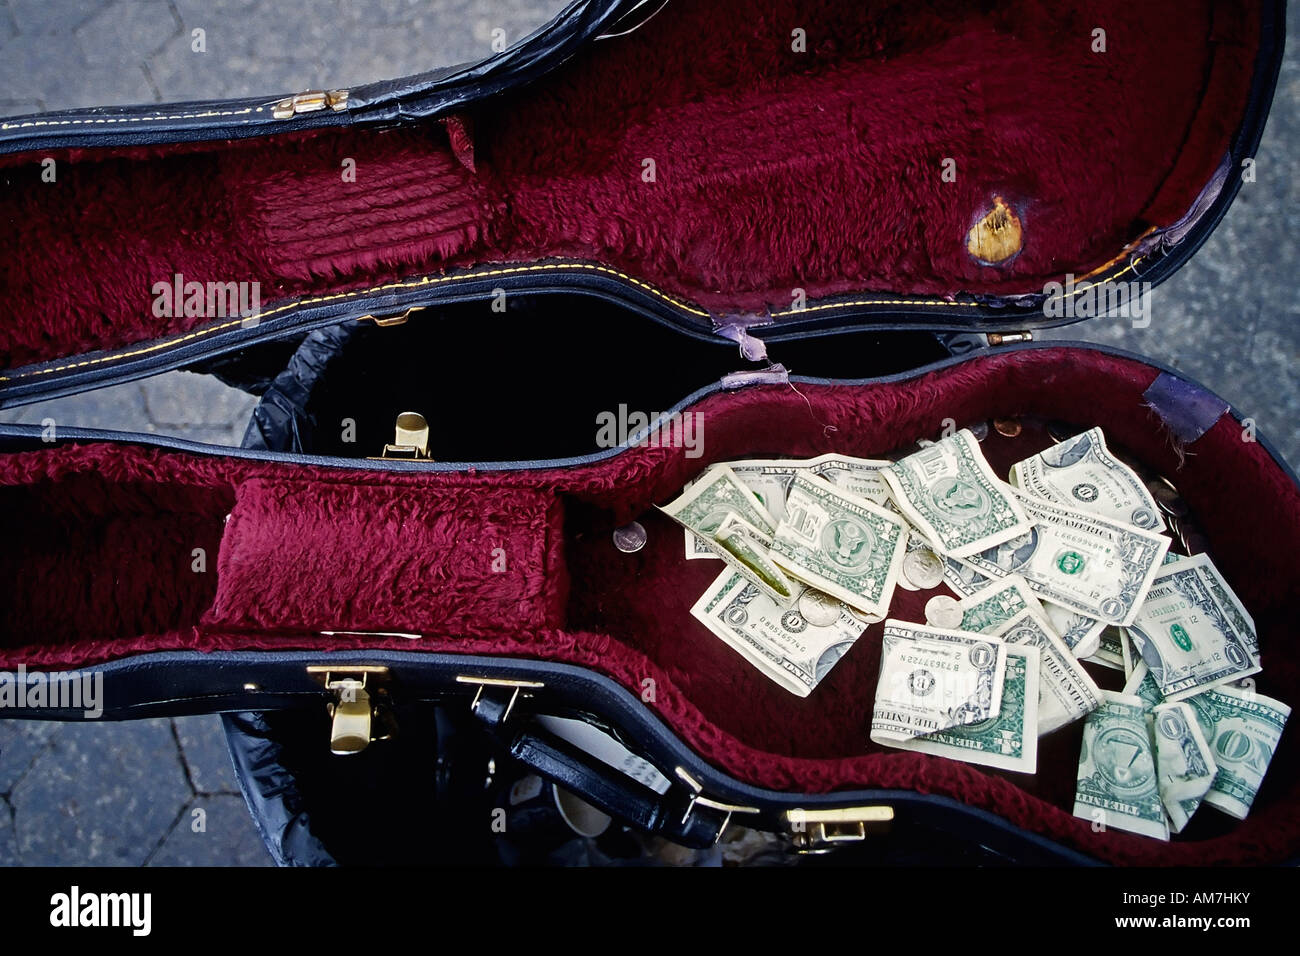 Dollar notes collected in a violine case of a street musican, New York City, USA - Stock Image